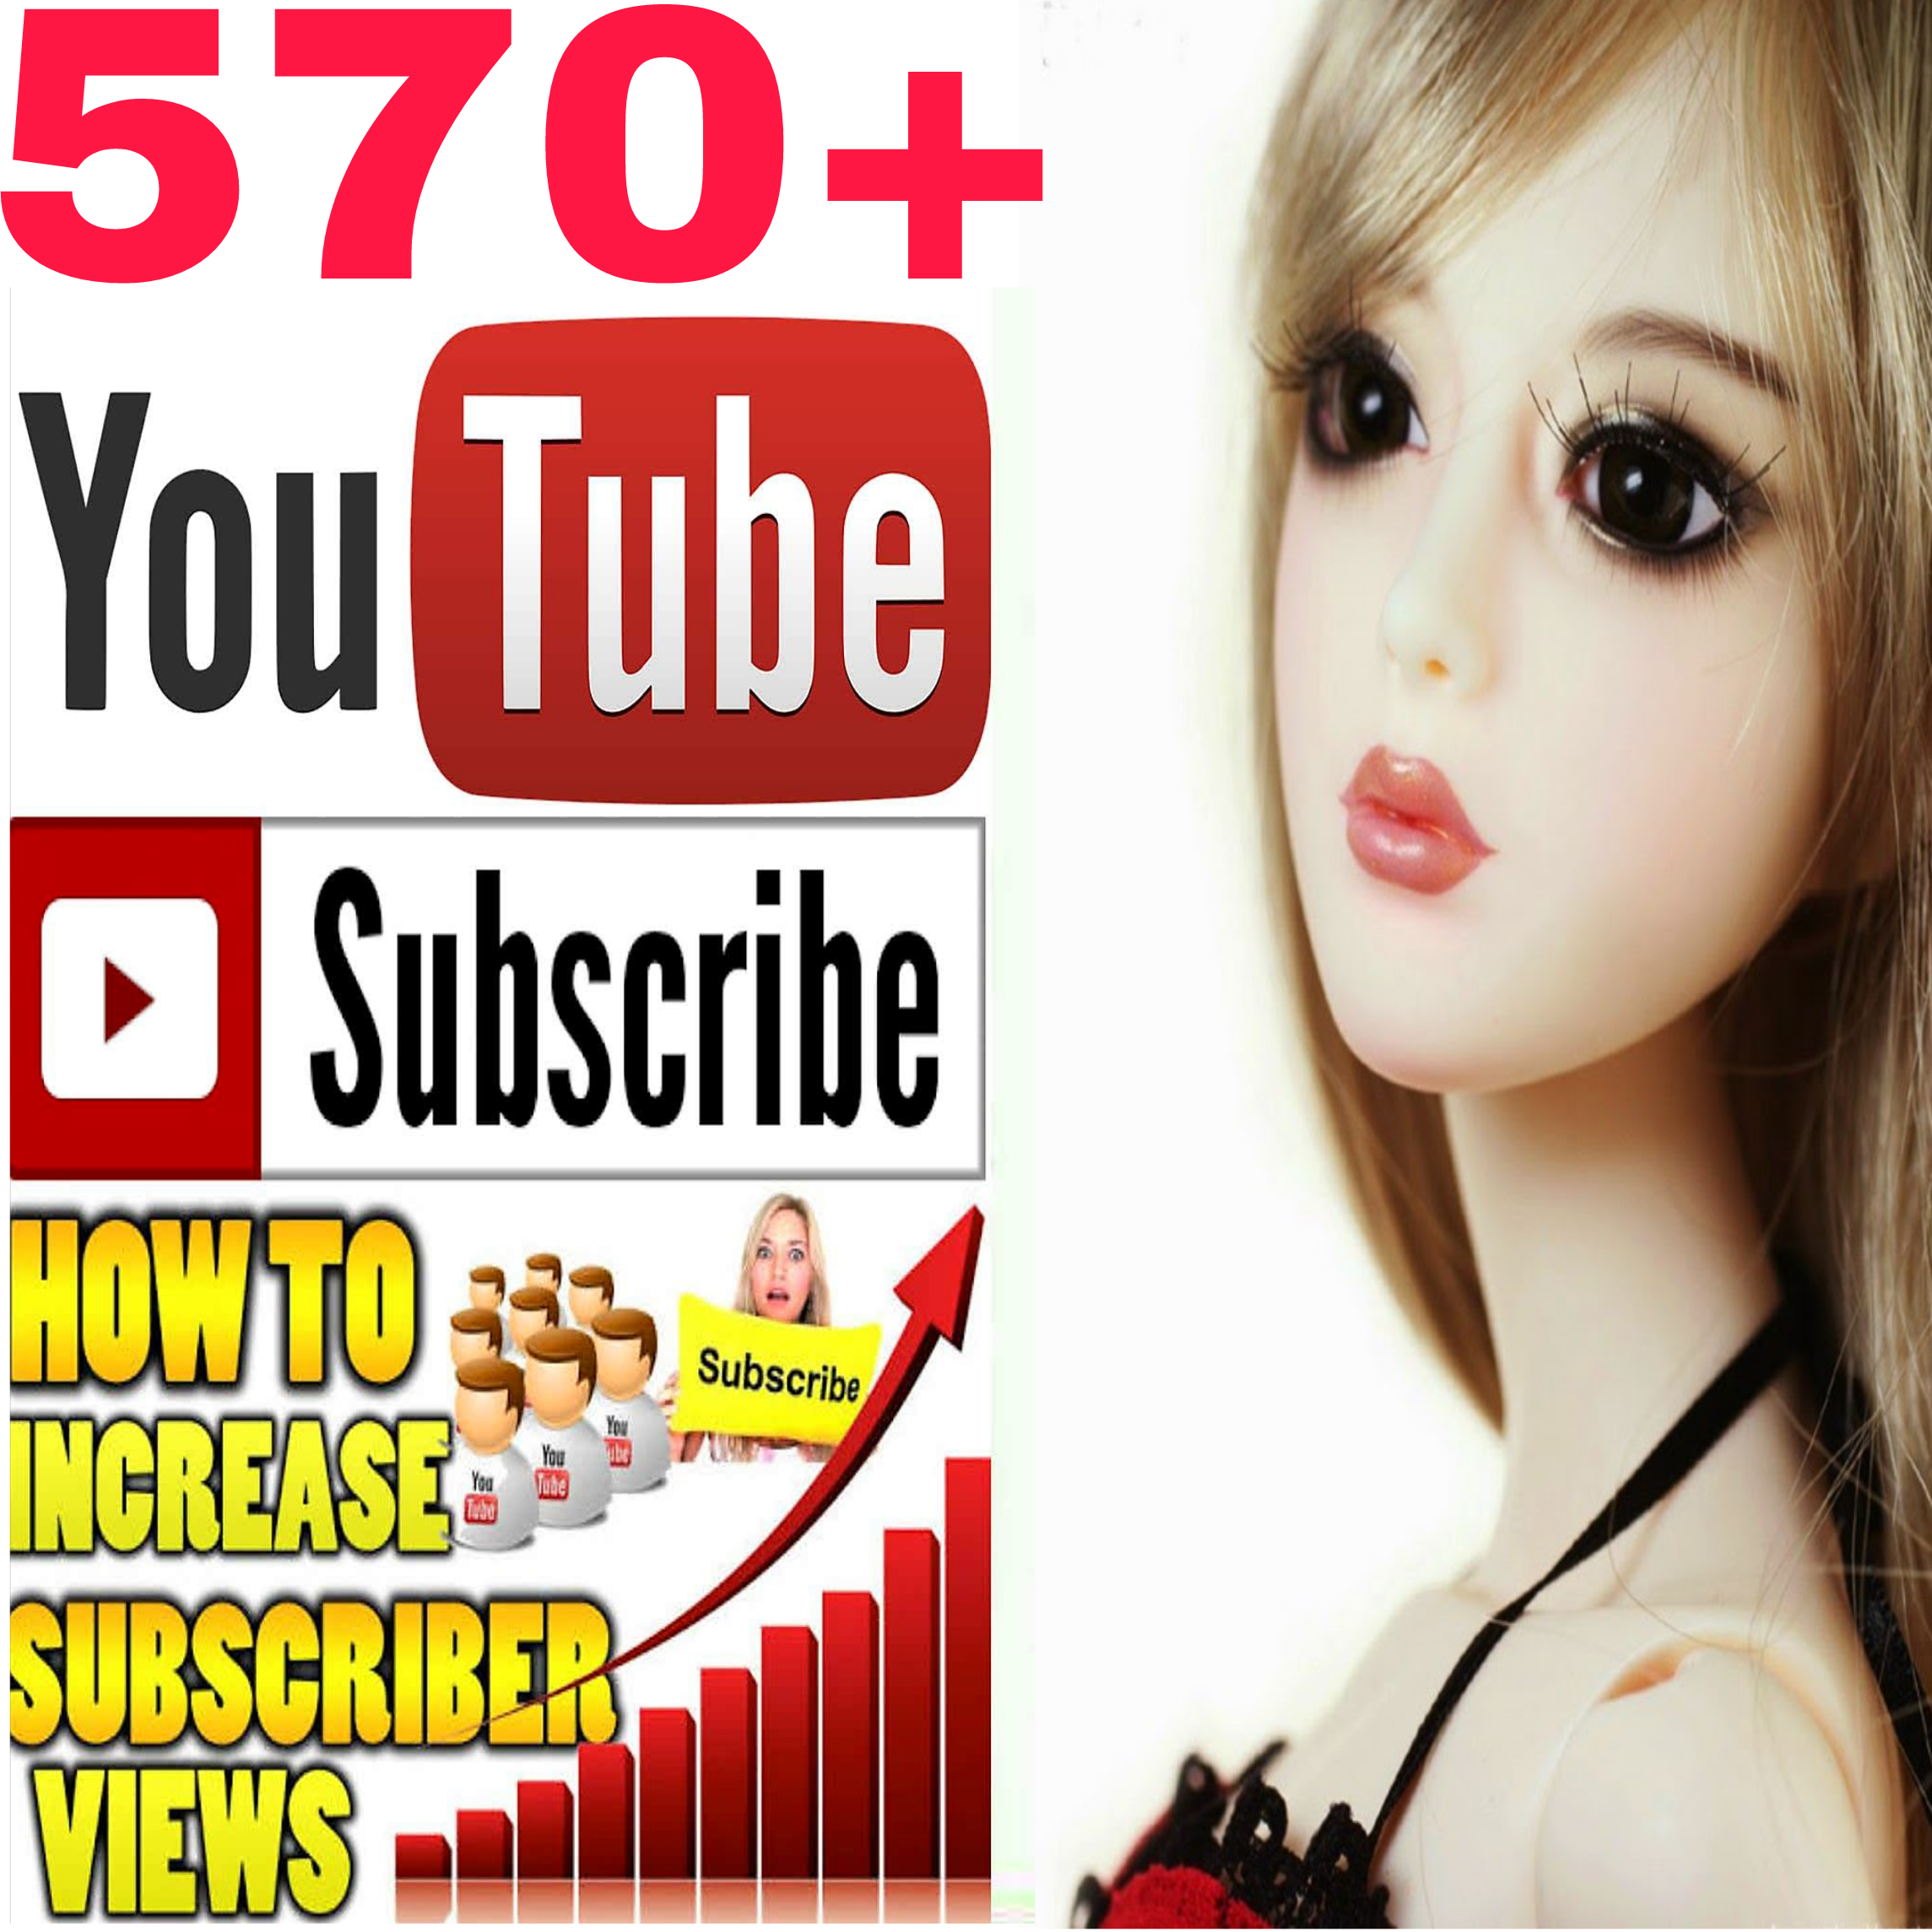 safe add 570+ yt channel subscriber very fast delivery within 3-7 hours